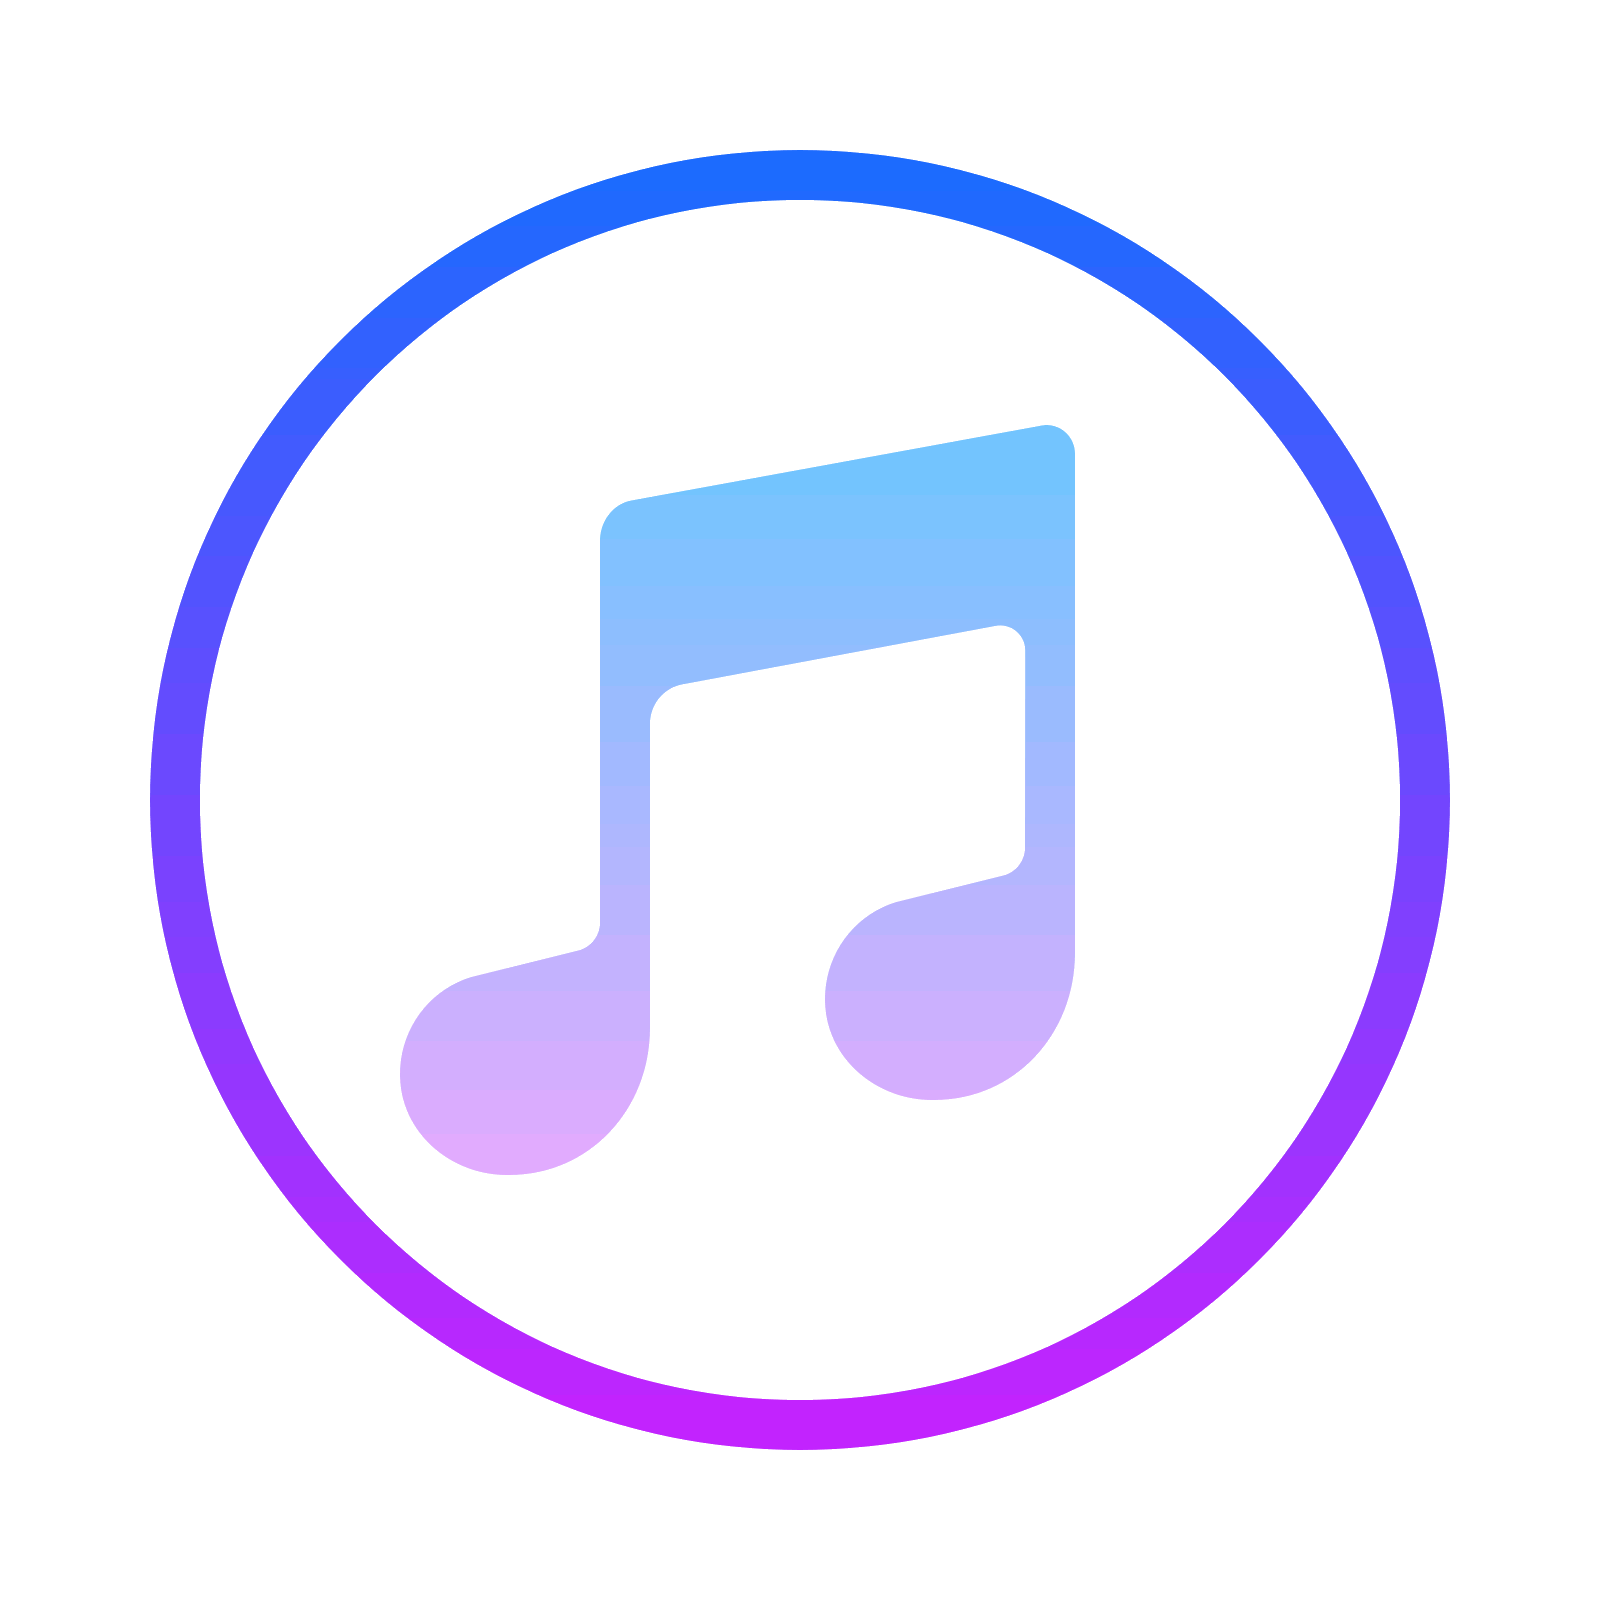 Free download and vector. Itunes icon png